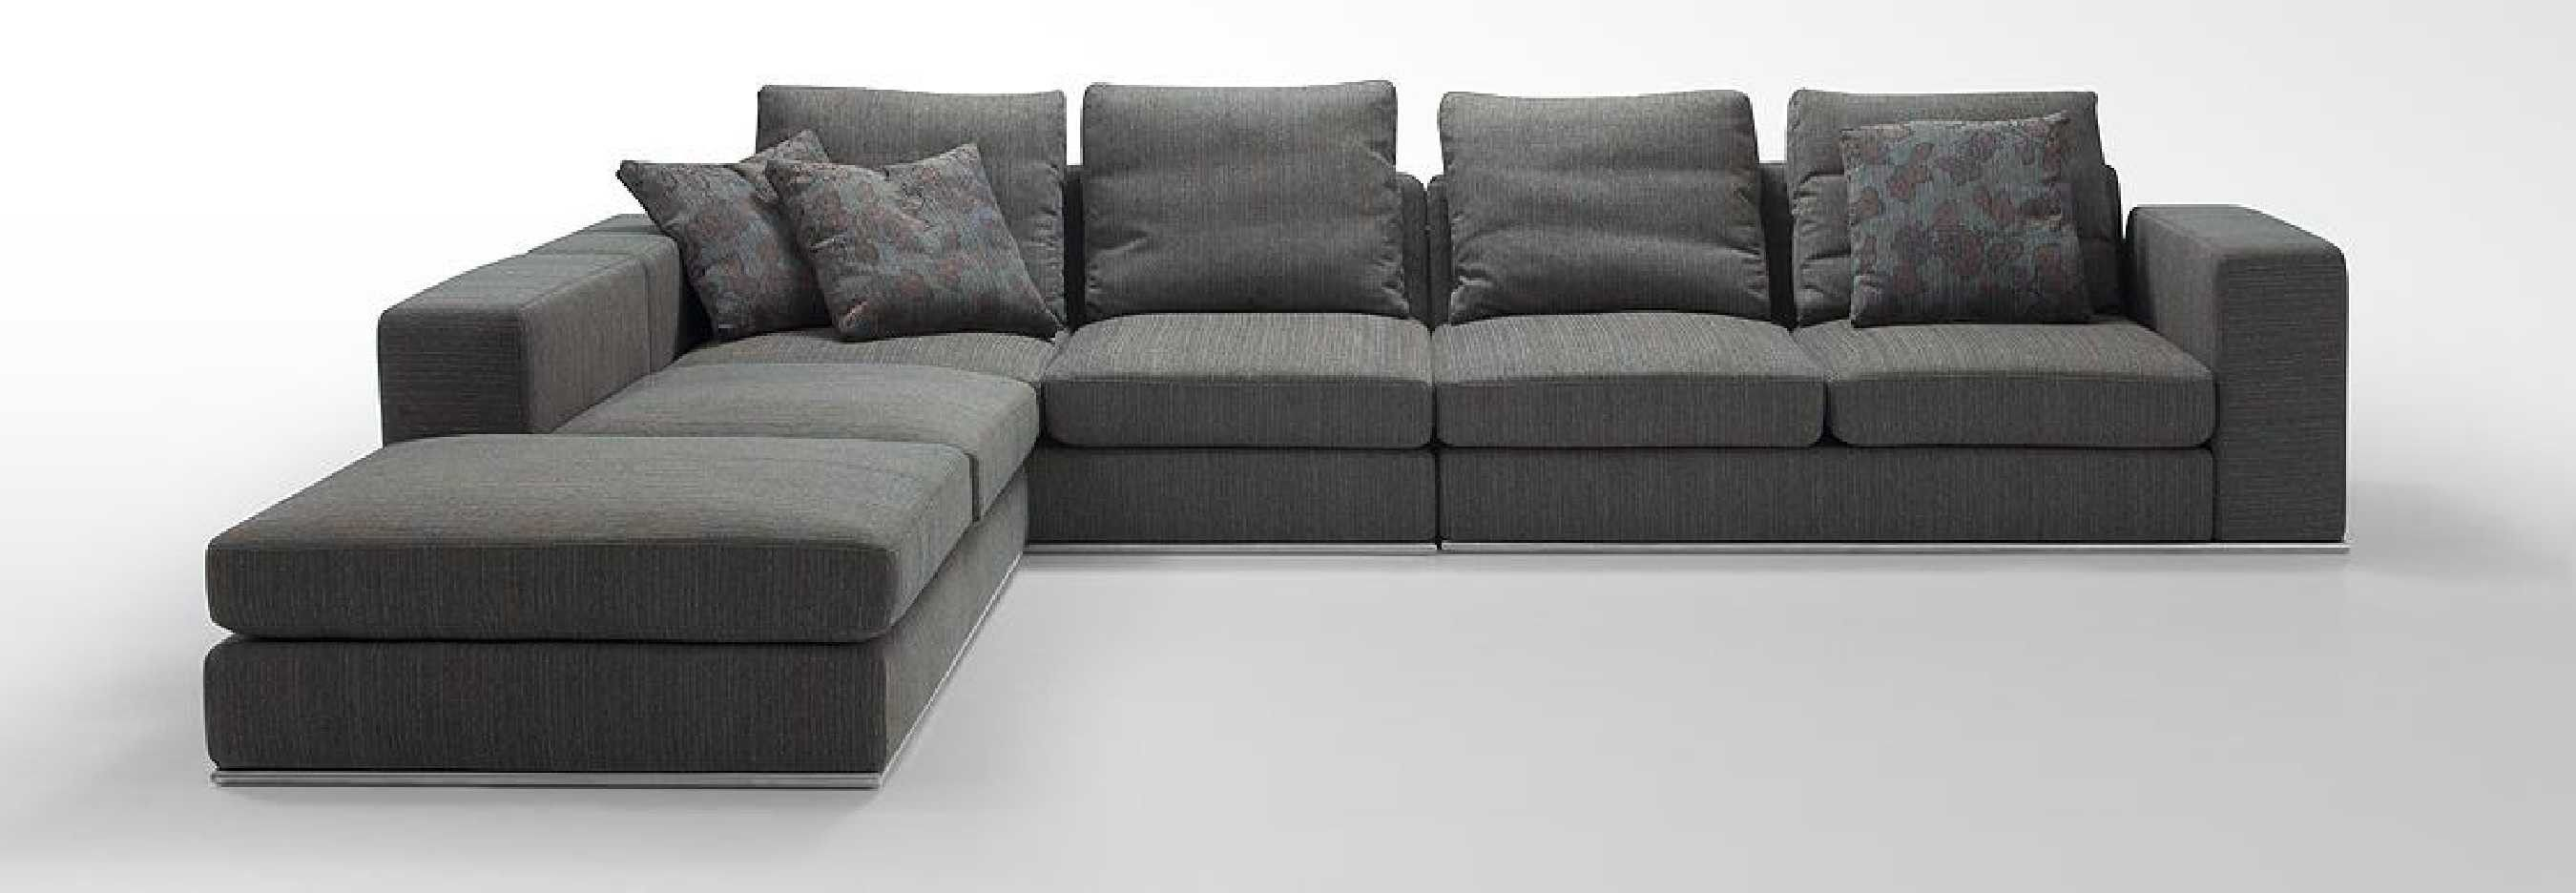 Appealing L Shaped Sofa Come With Grey Modern Comfy Fabric L Shaped Sofa  With